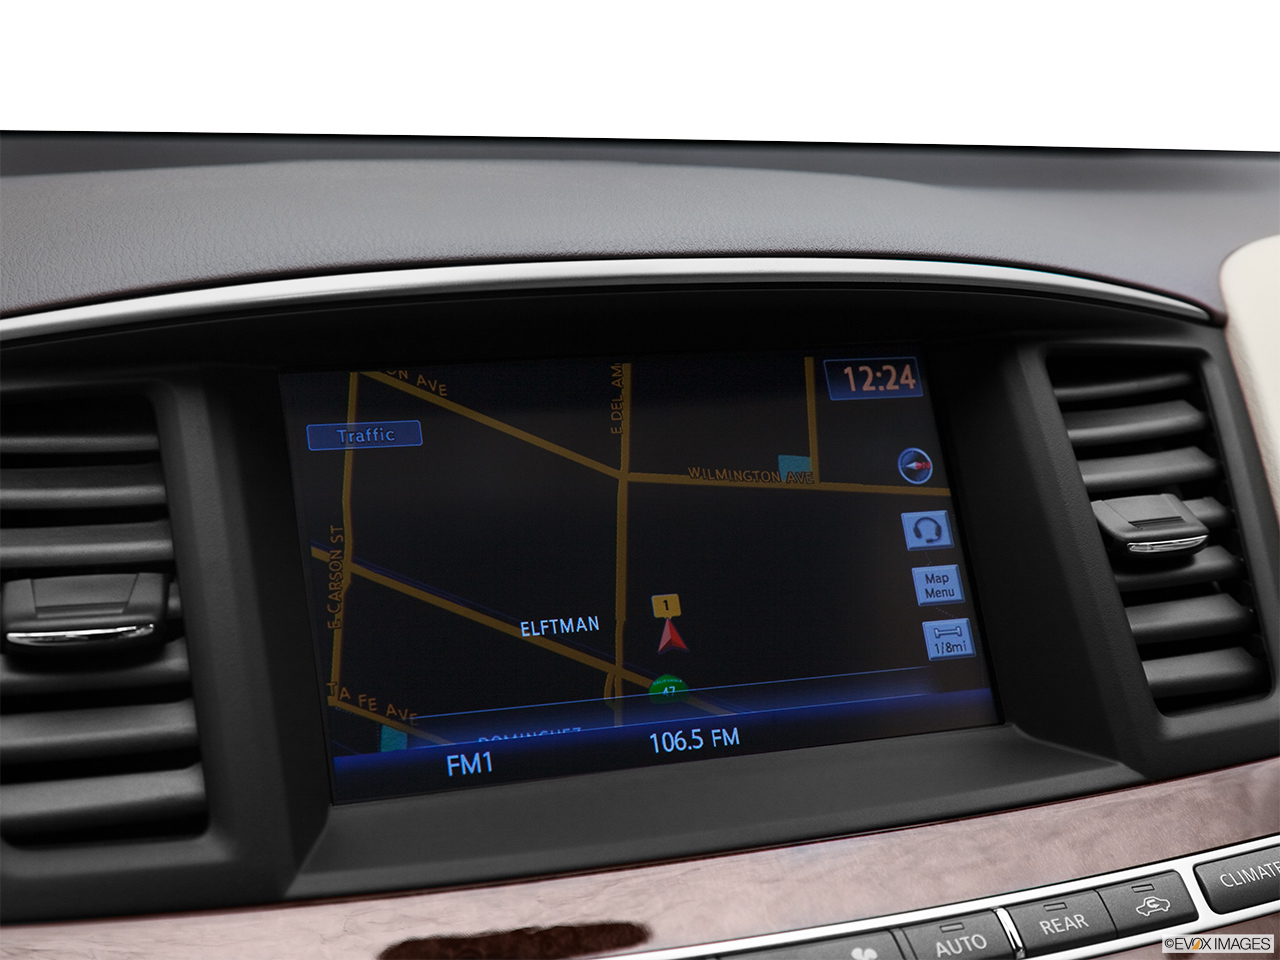 2013 Infiniti JX JX35 Driver position view of navigation system.